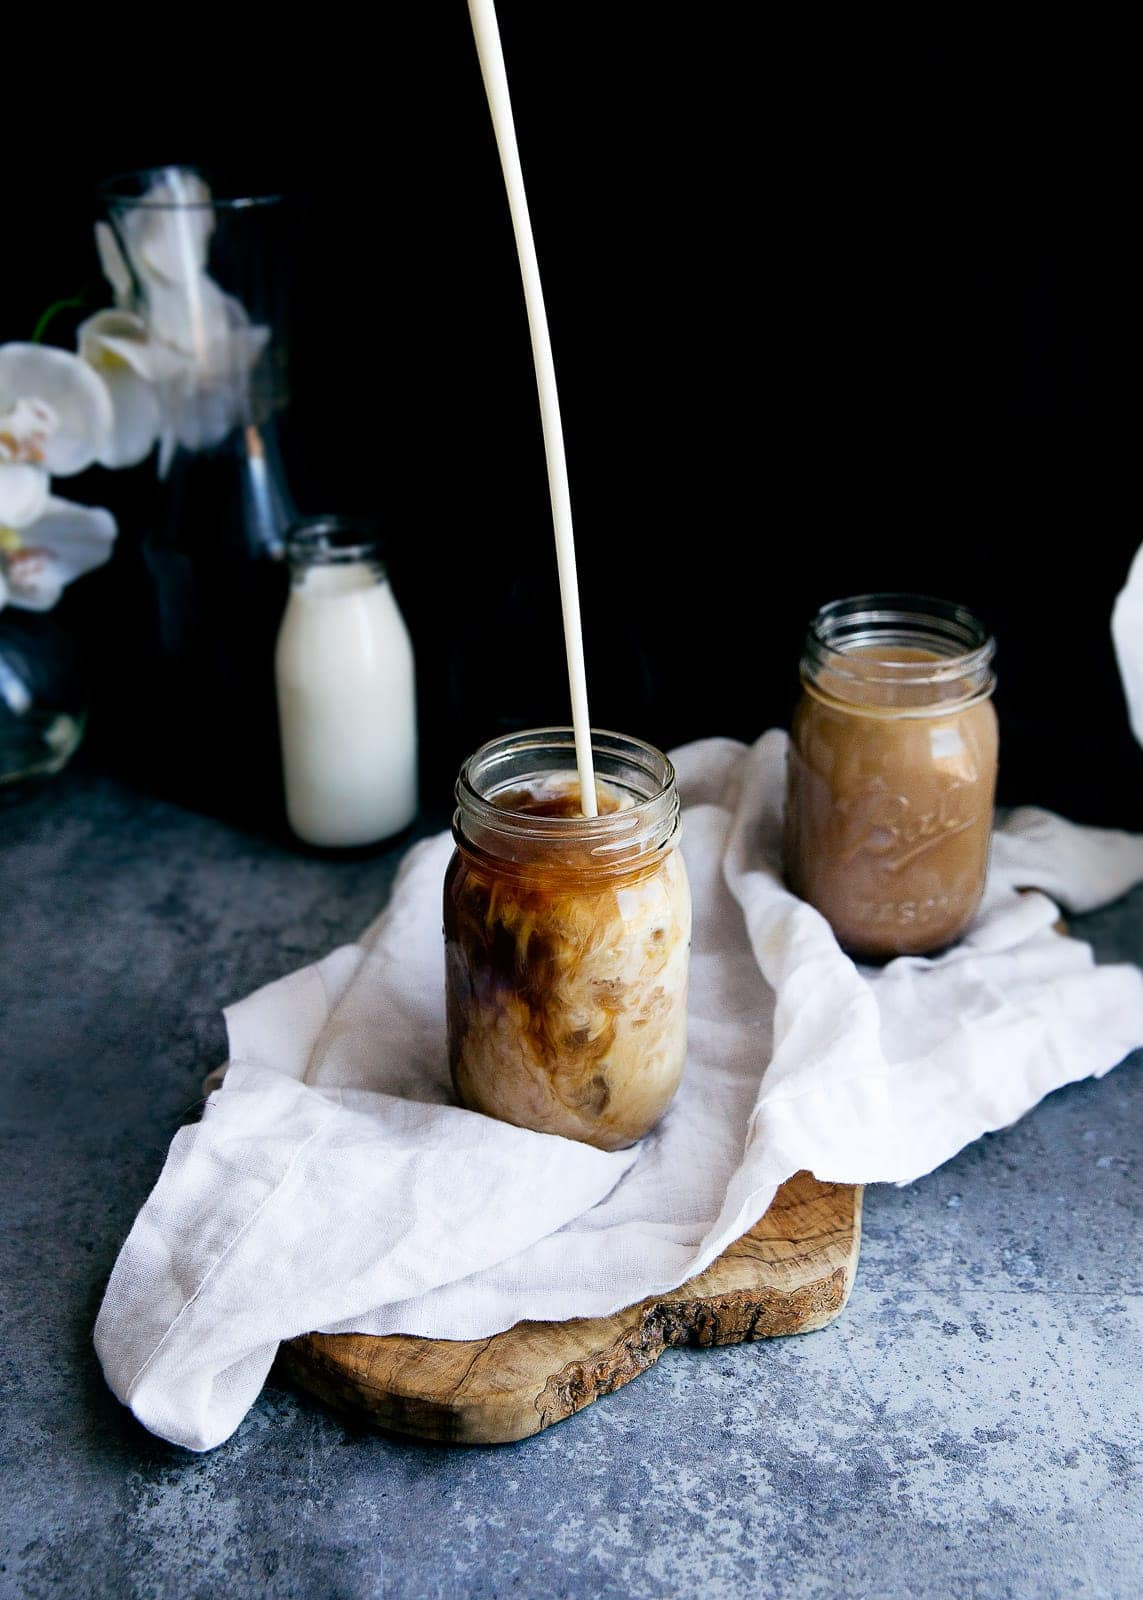 Forget $4 iced coffees. Here's the ultimate Cold Brew Coffee recipe you can easily make at home!